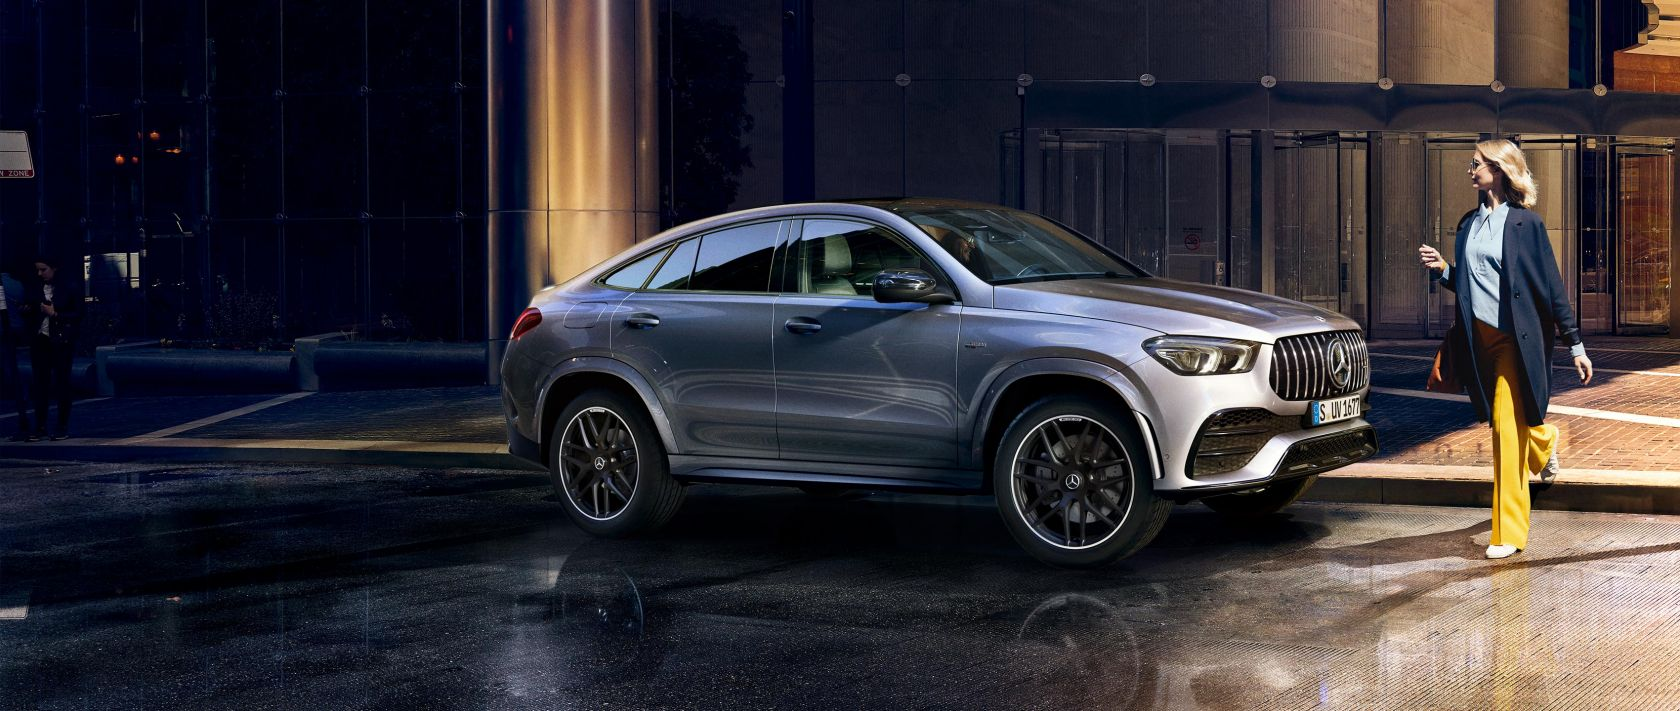 The New Mercedes Benz Gle Coupe 2020 All Kinds Of Strength